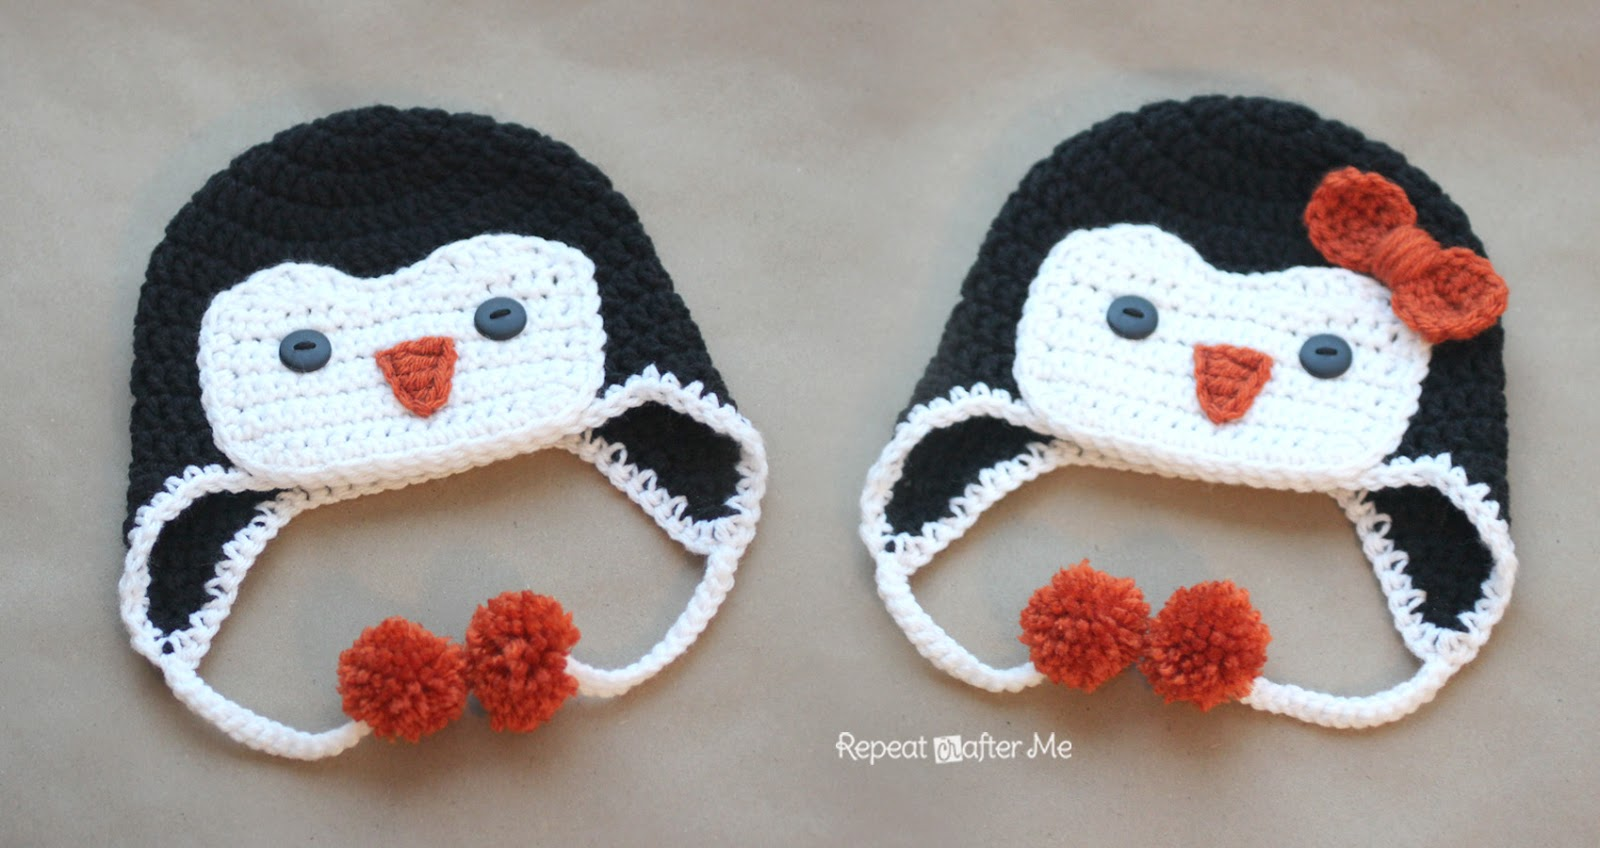 c78f25419cd Crochet Penguin Hat Pattern - Repeat Crafter Me